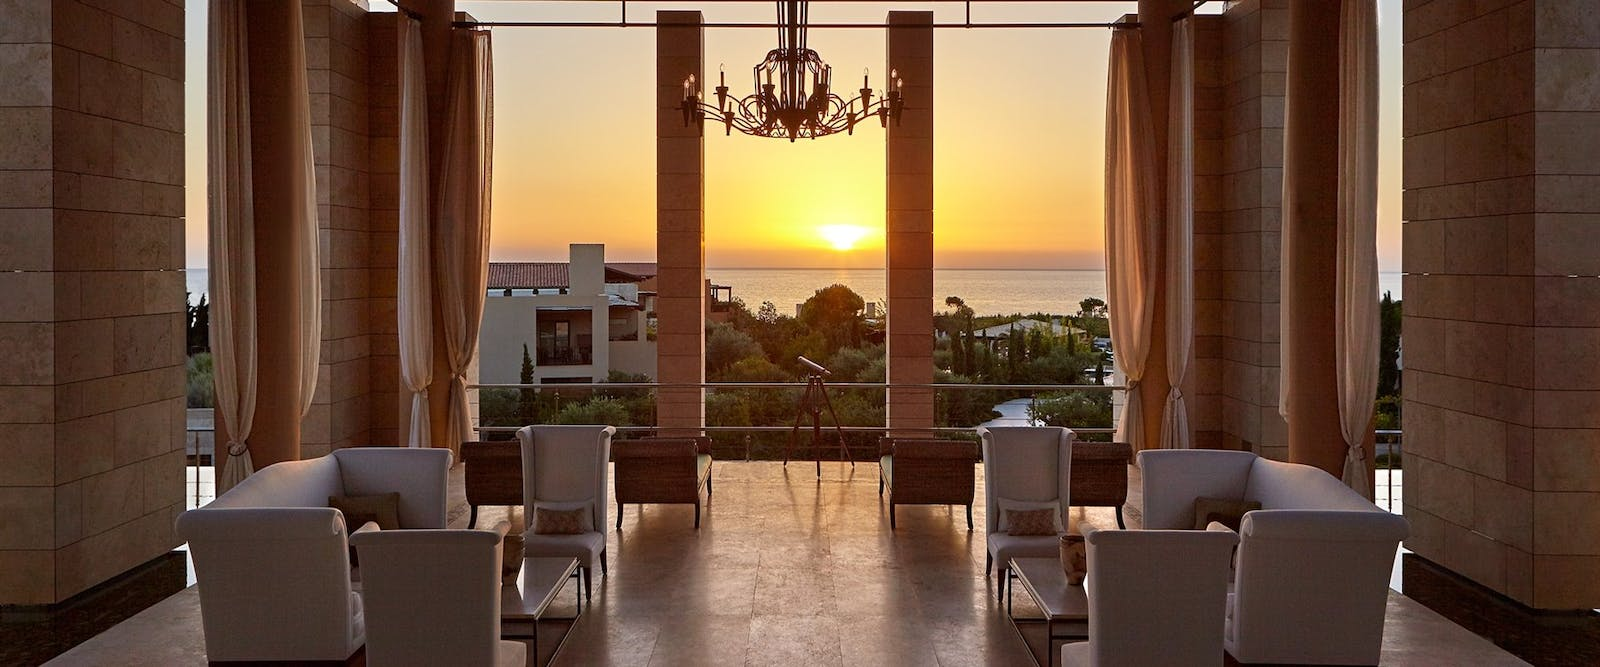 Open Air Lobby at Sunset at The Romanos, a Luxury Collection Resort, Peloponnese, Greece